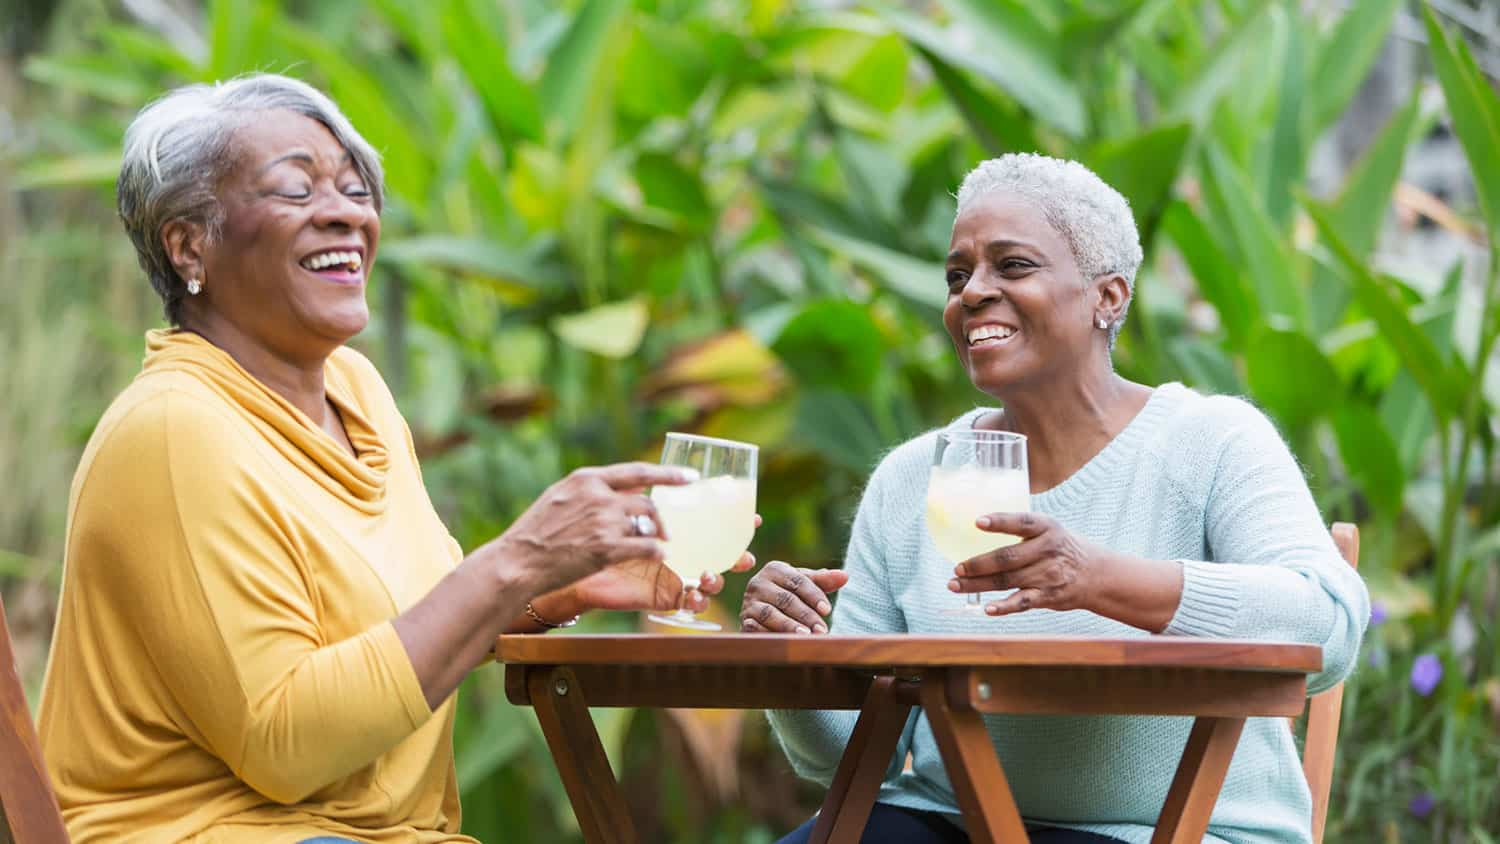 Looking For Mature Men In The United States